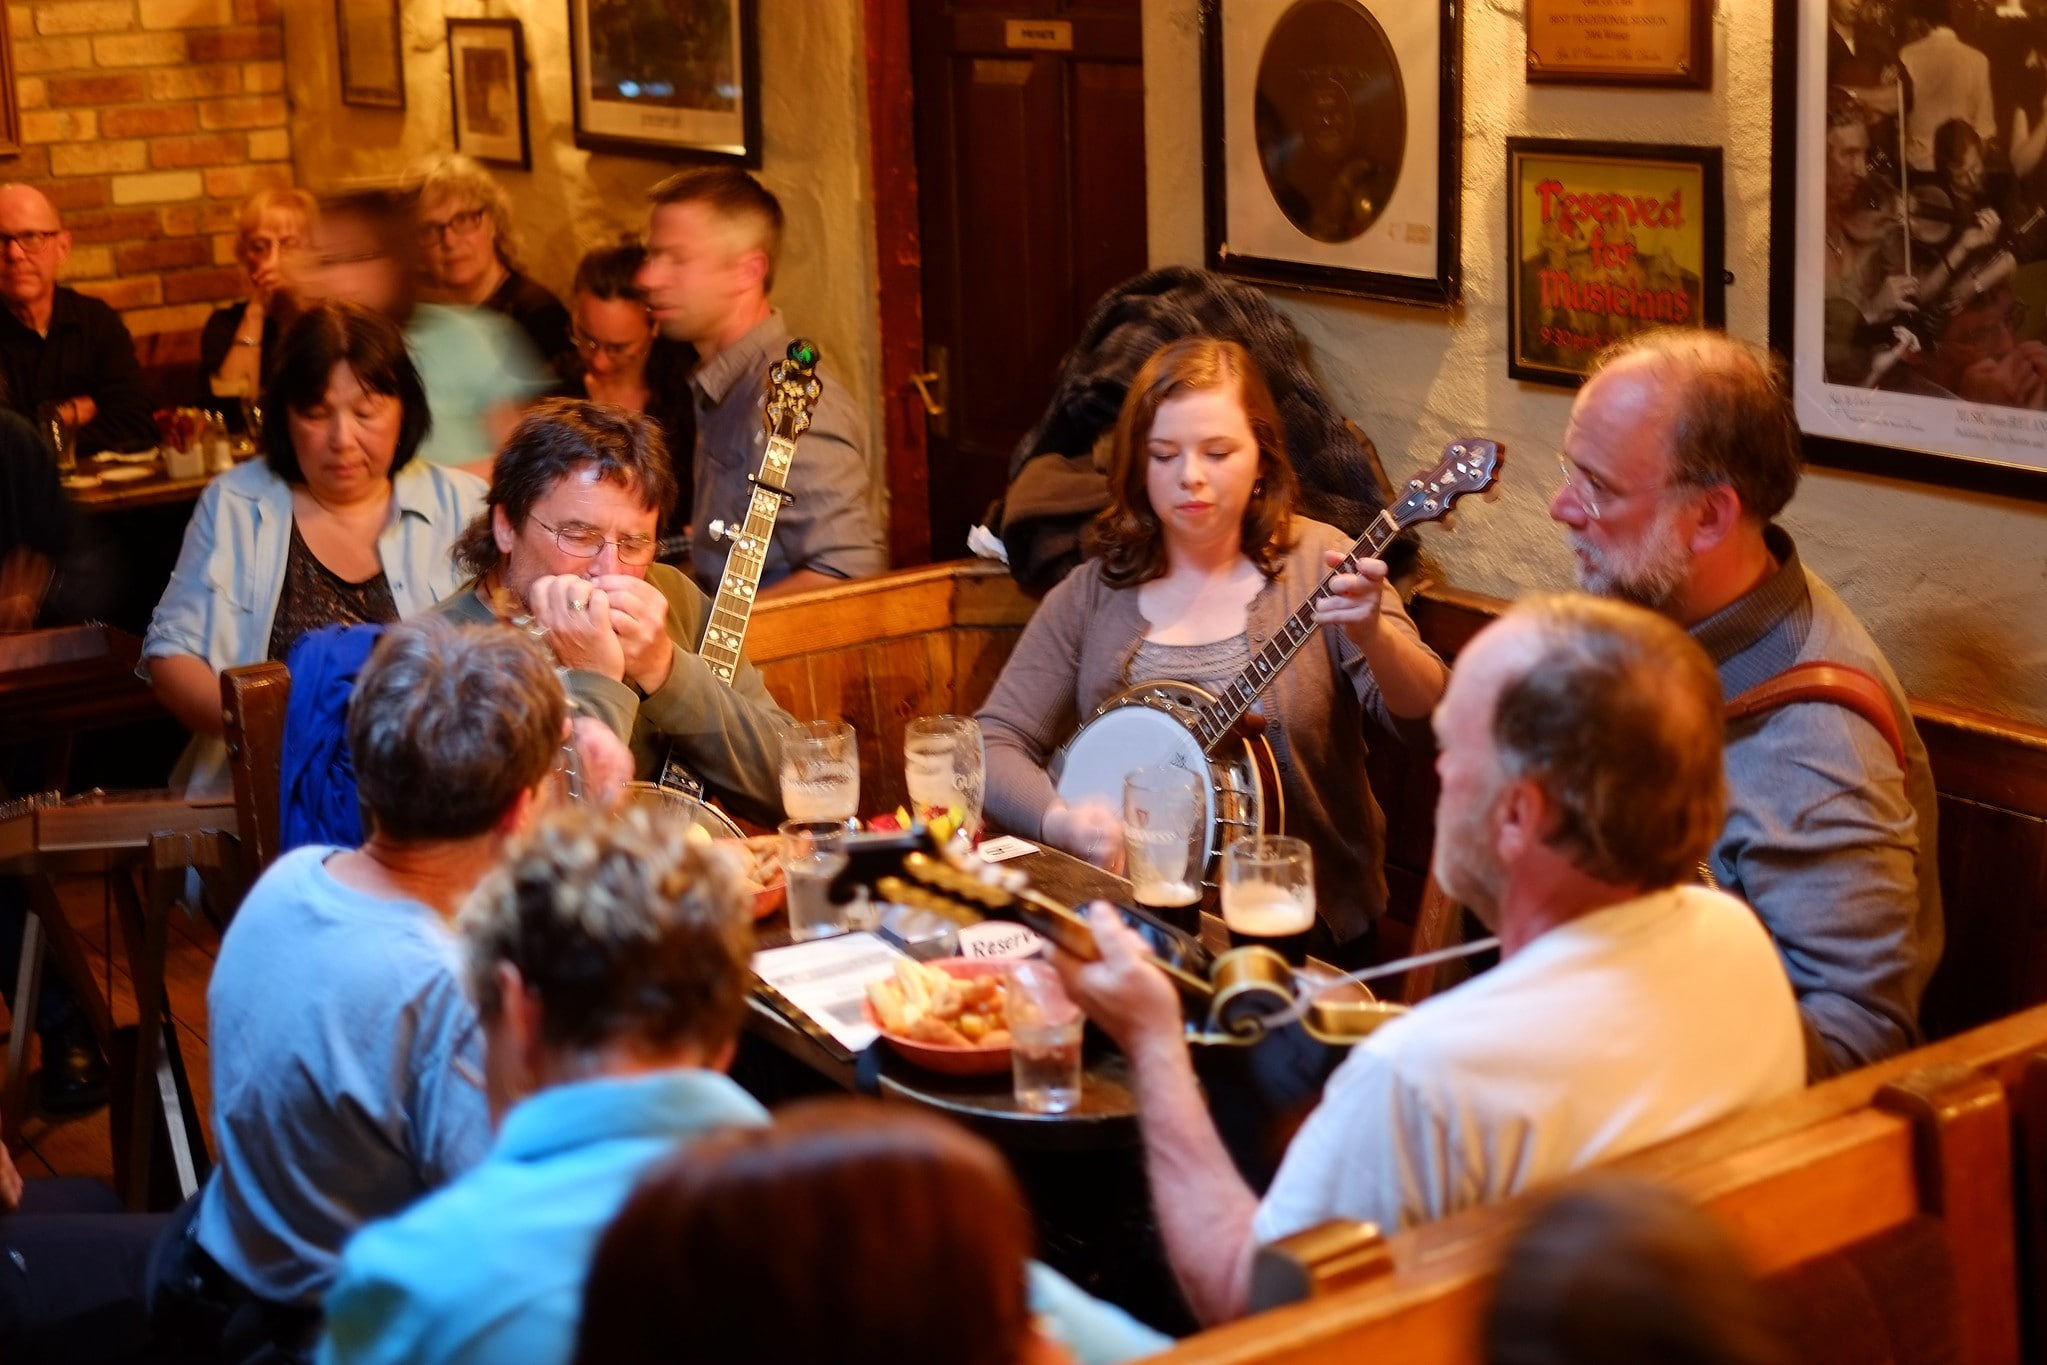 Doolin is a great place to visit in Ireland if you want to experience traditional Irish music